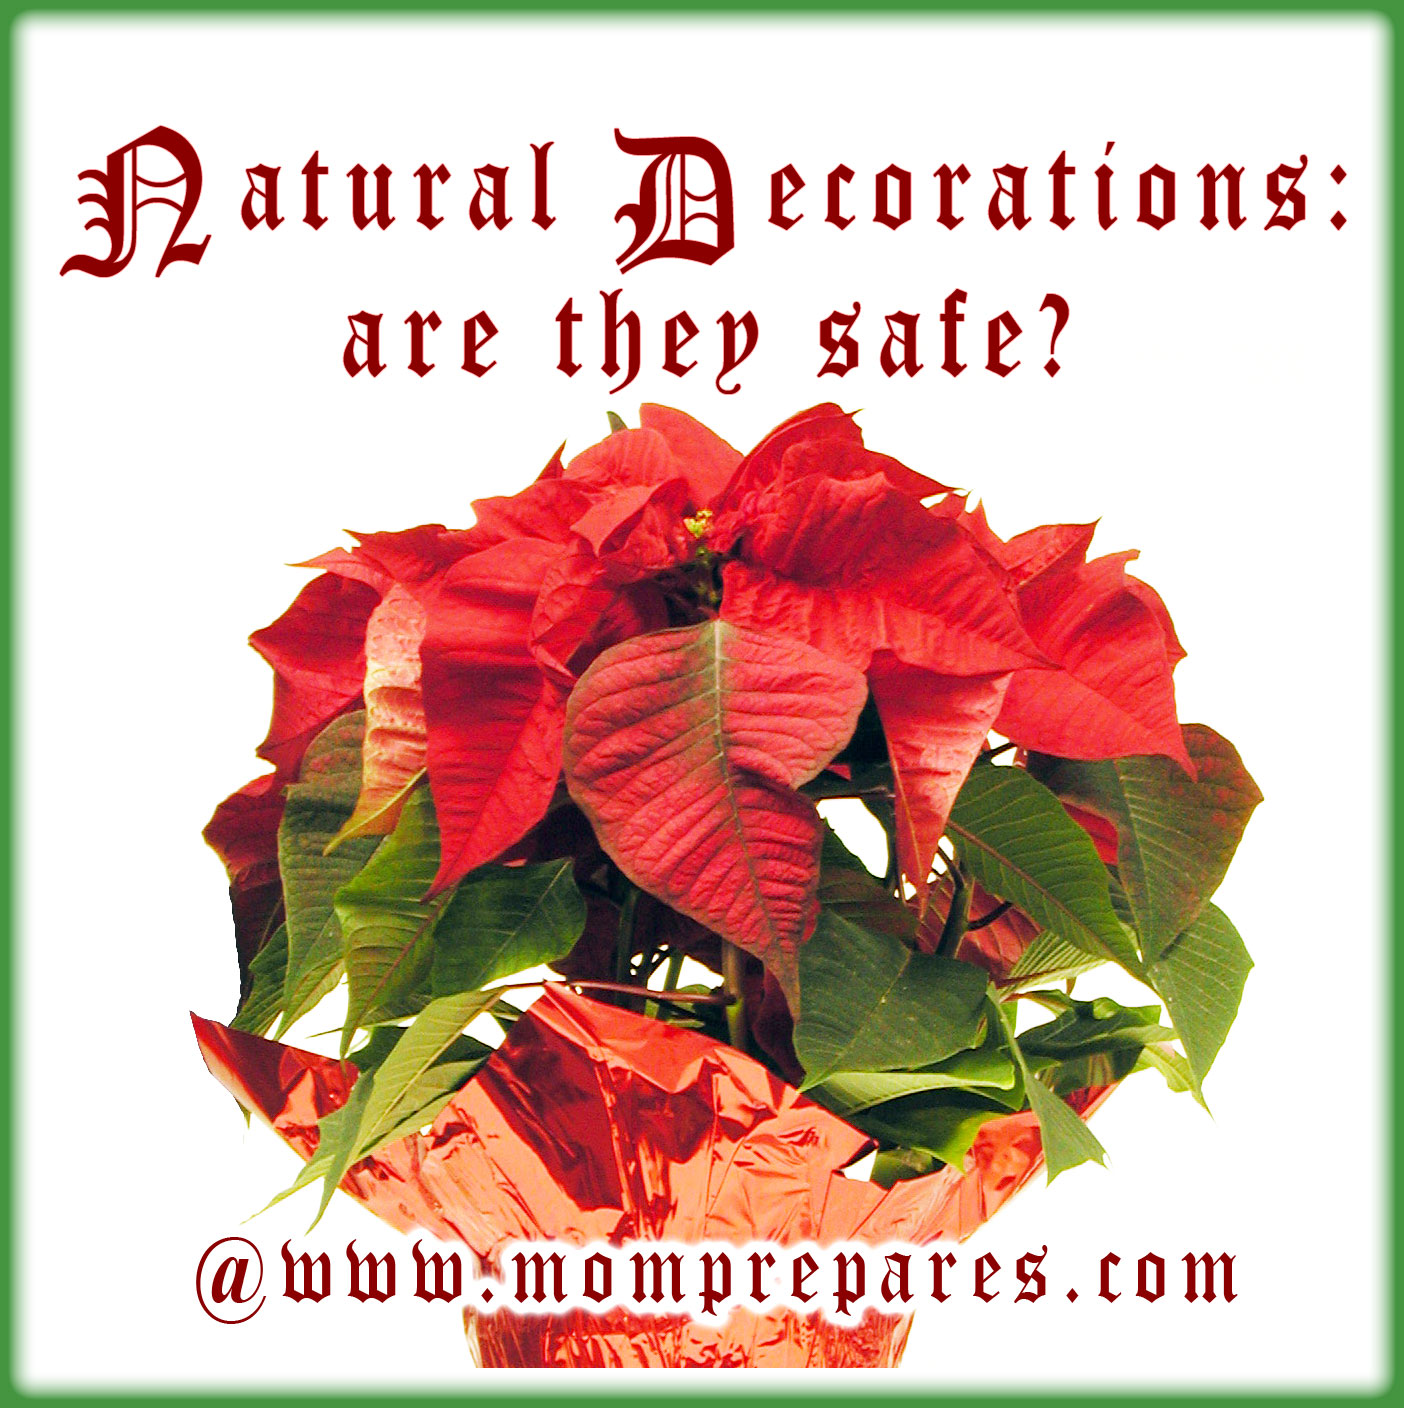 Are natural Christmas decorations safe? Original Image by Mikecco